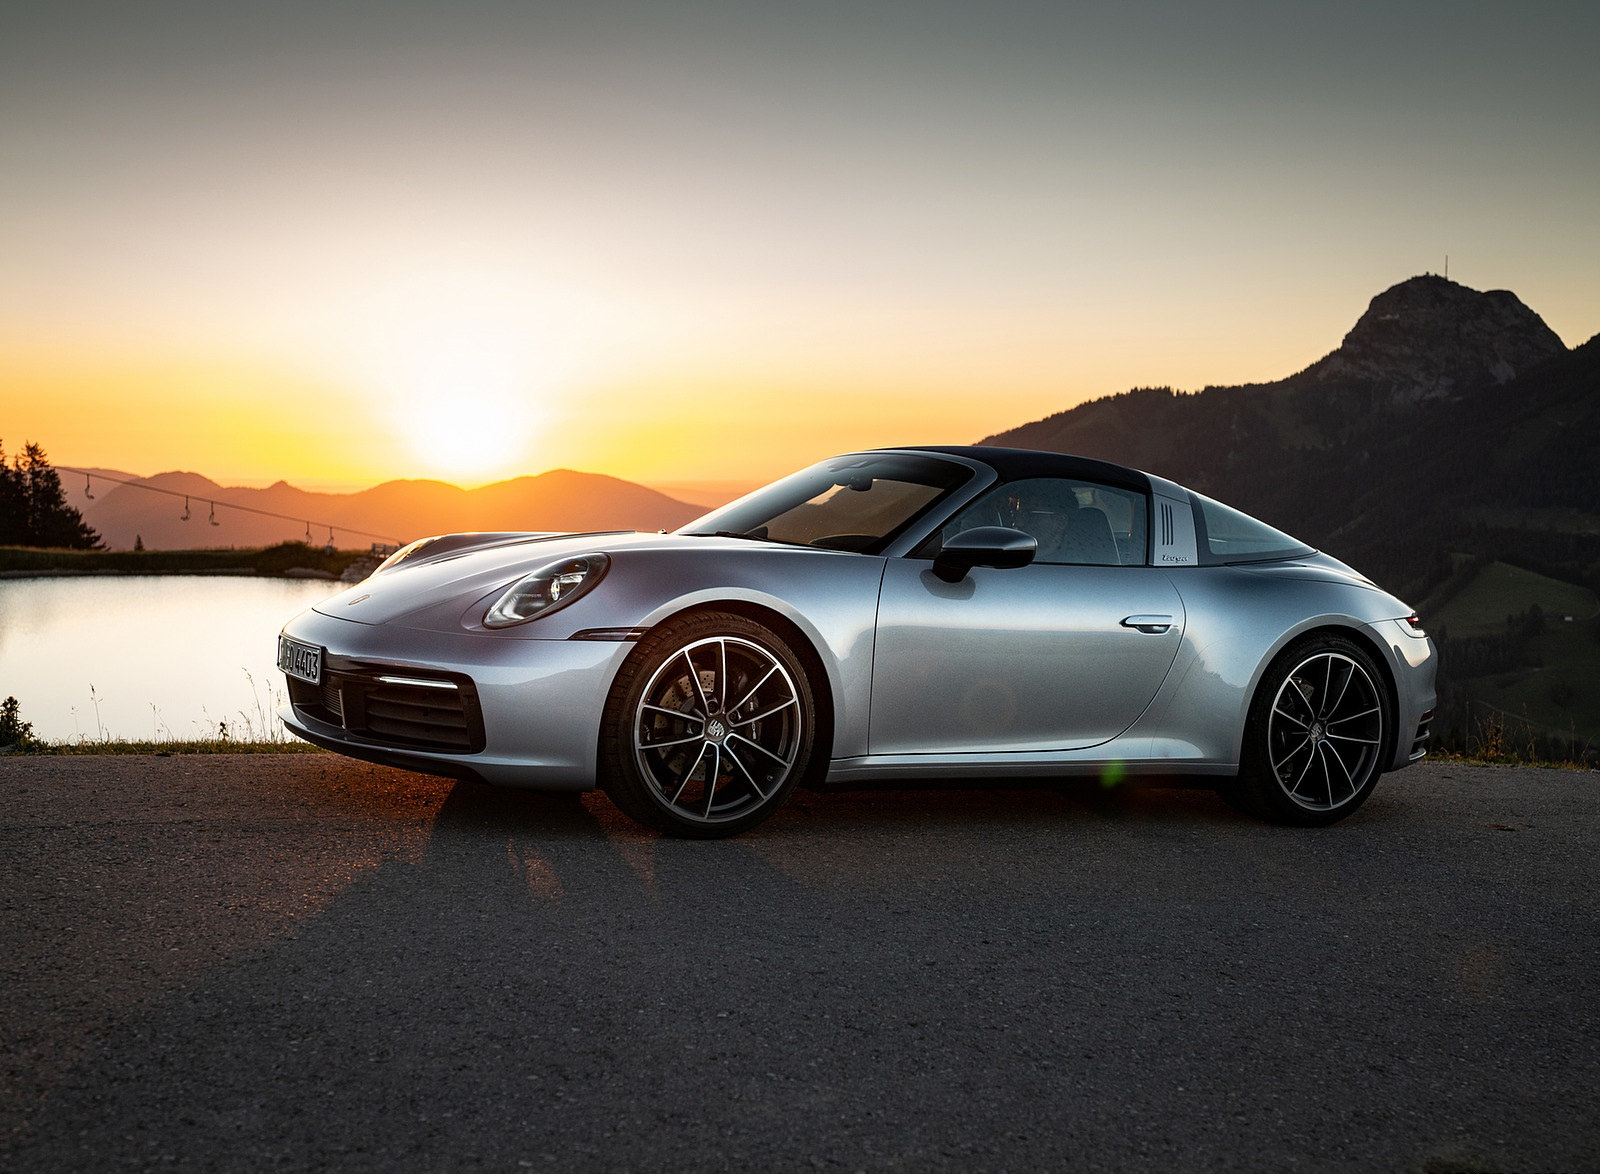 2021 Porsche 911 Targa 4 (Color: Dolomite Silver Metallic) Front Three-Quarter Wallpapers (9)